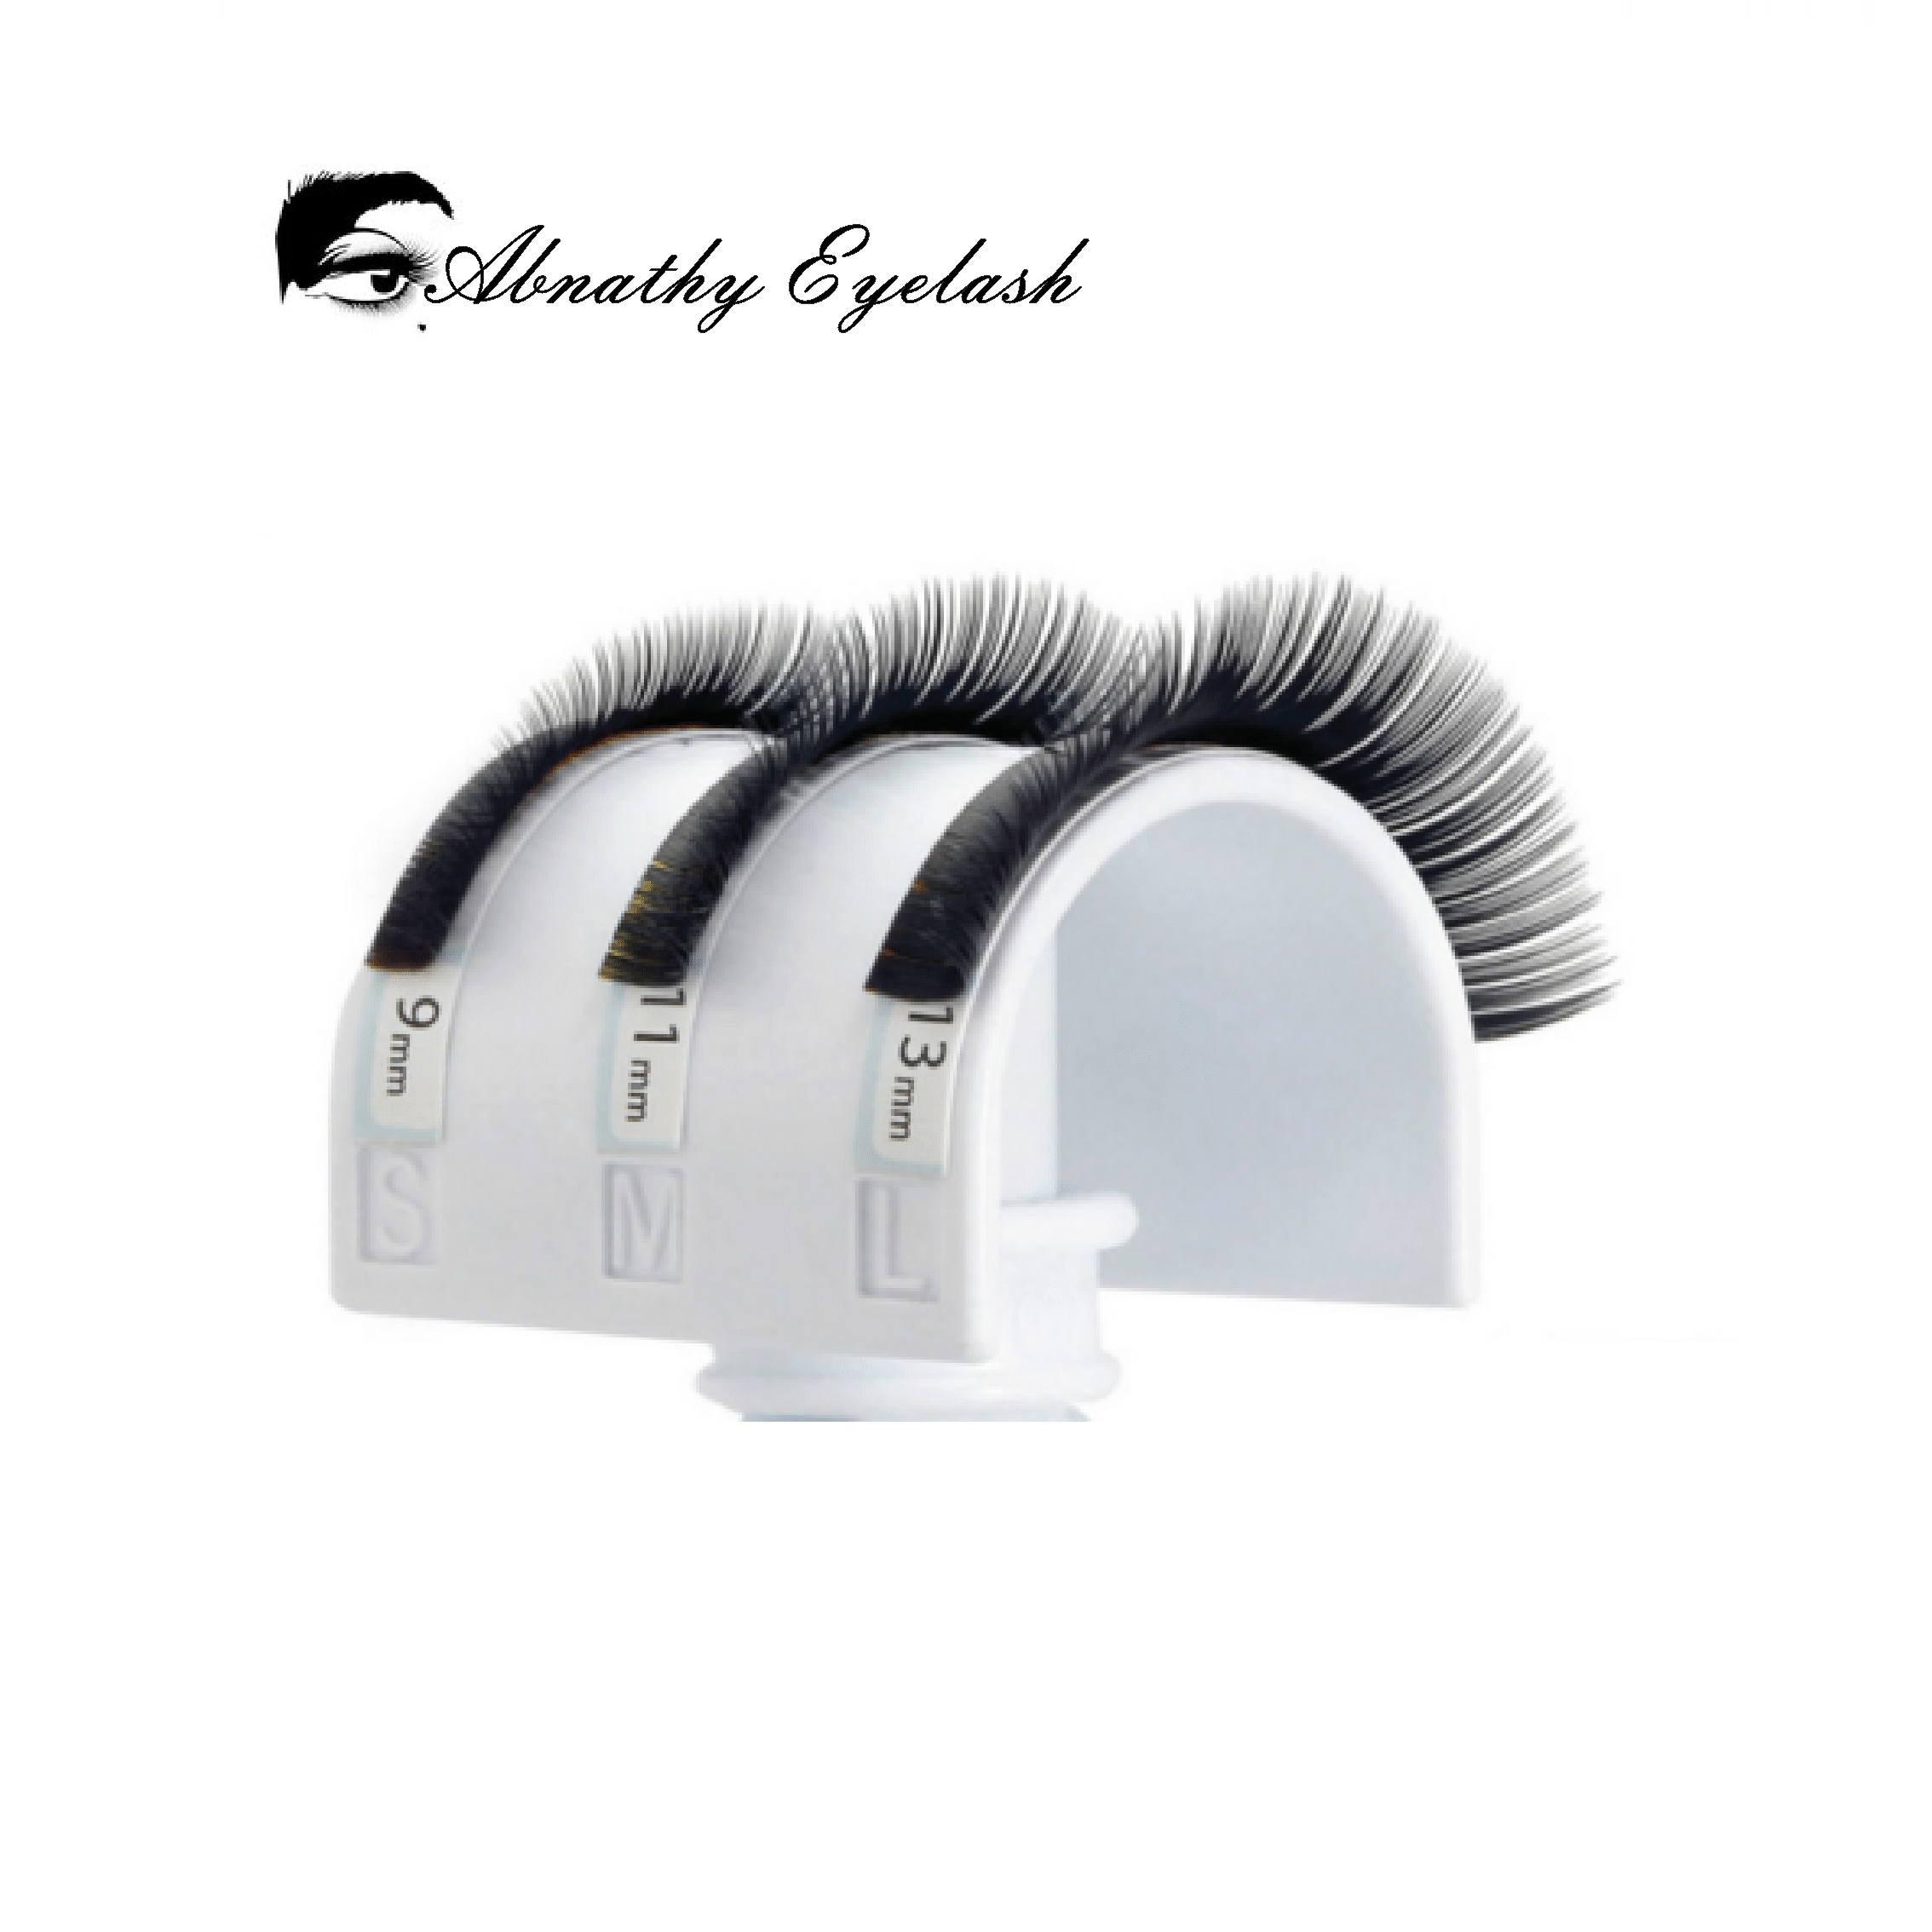 Abnathy Lashes Alle størrelser False Mink Eyelash Extensions Black - Makeup - Foto 5